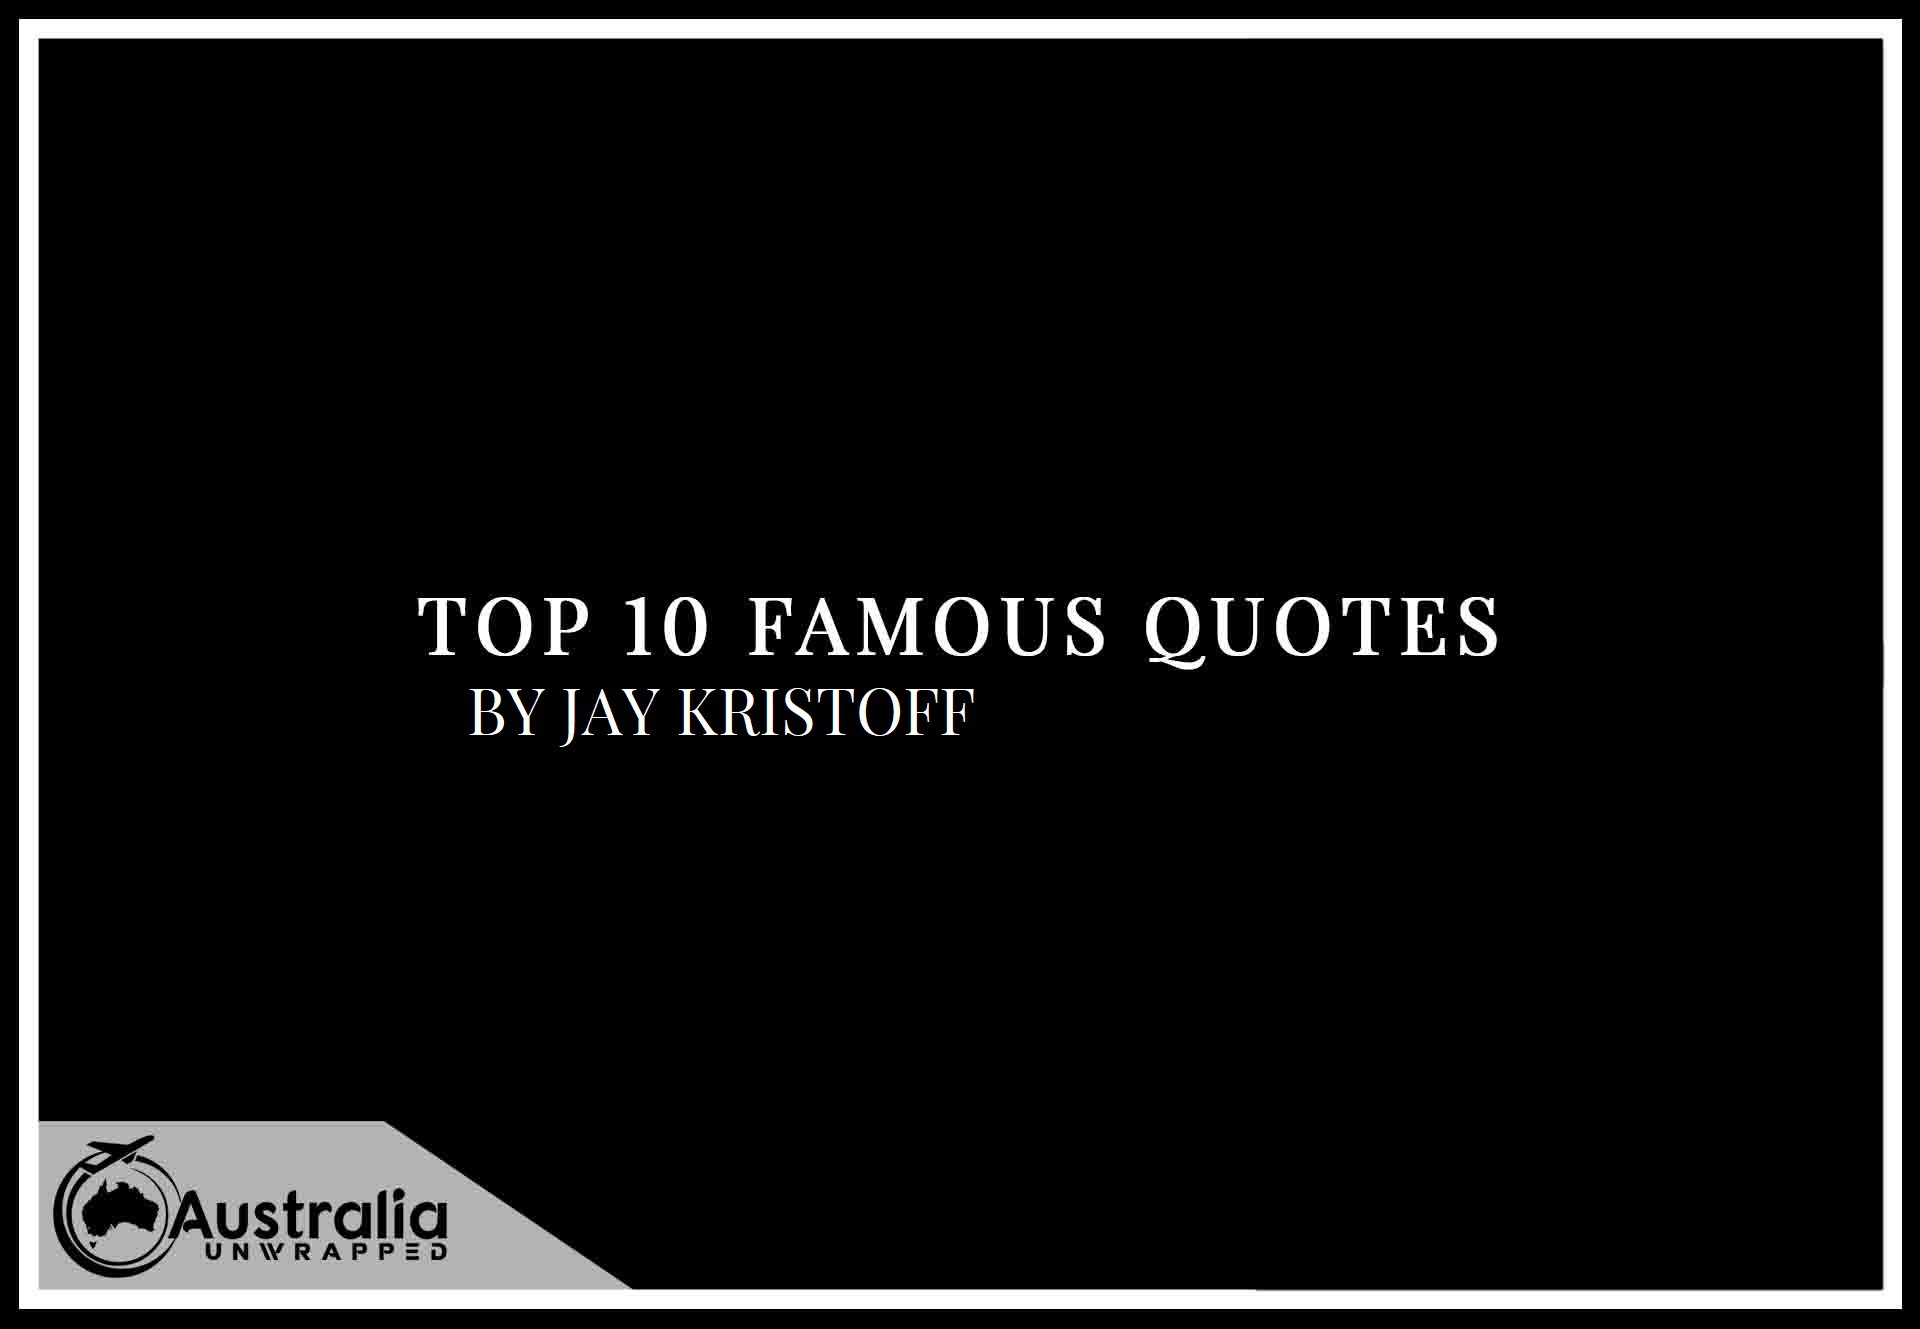 Top 10 Famous Quotes by Author Jay Kristoff